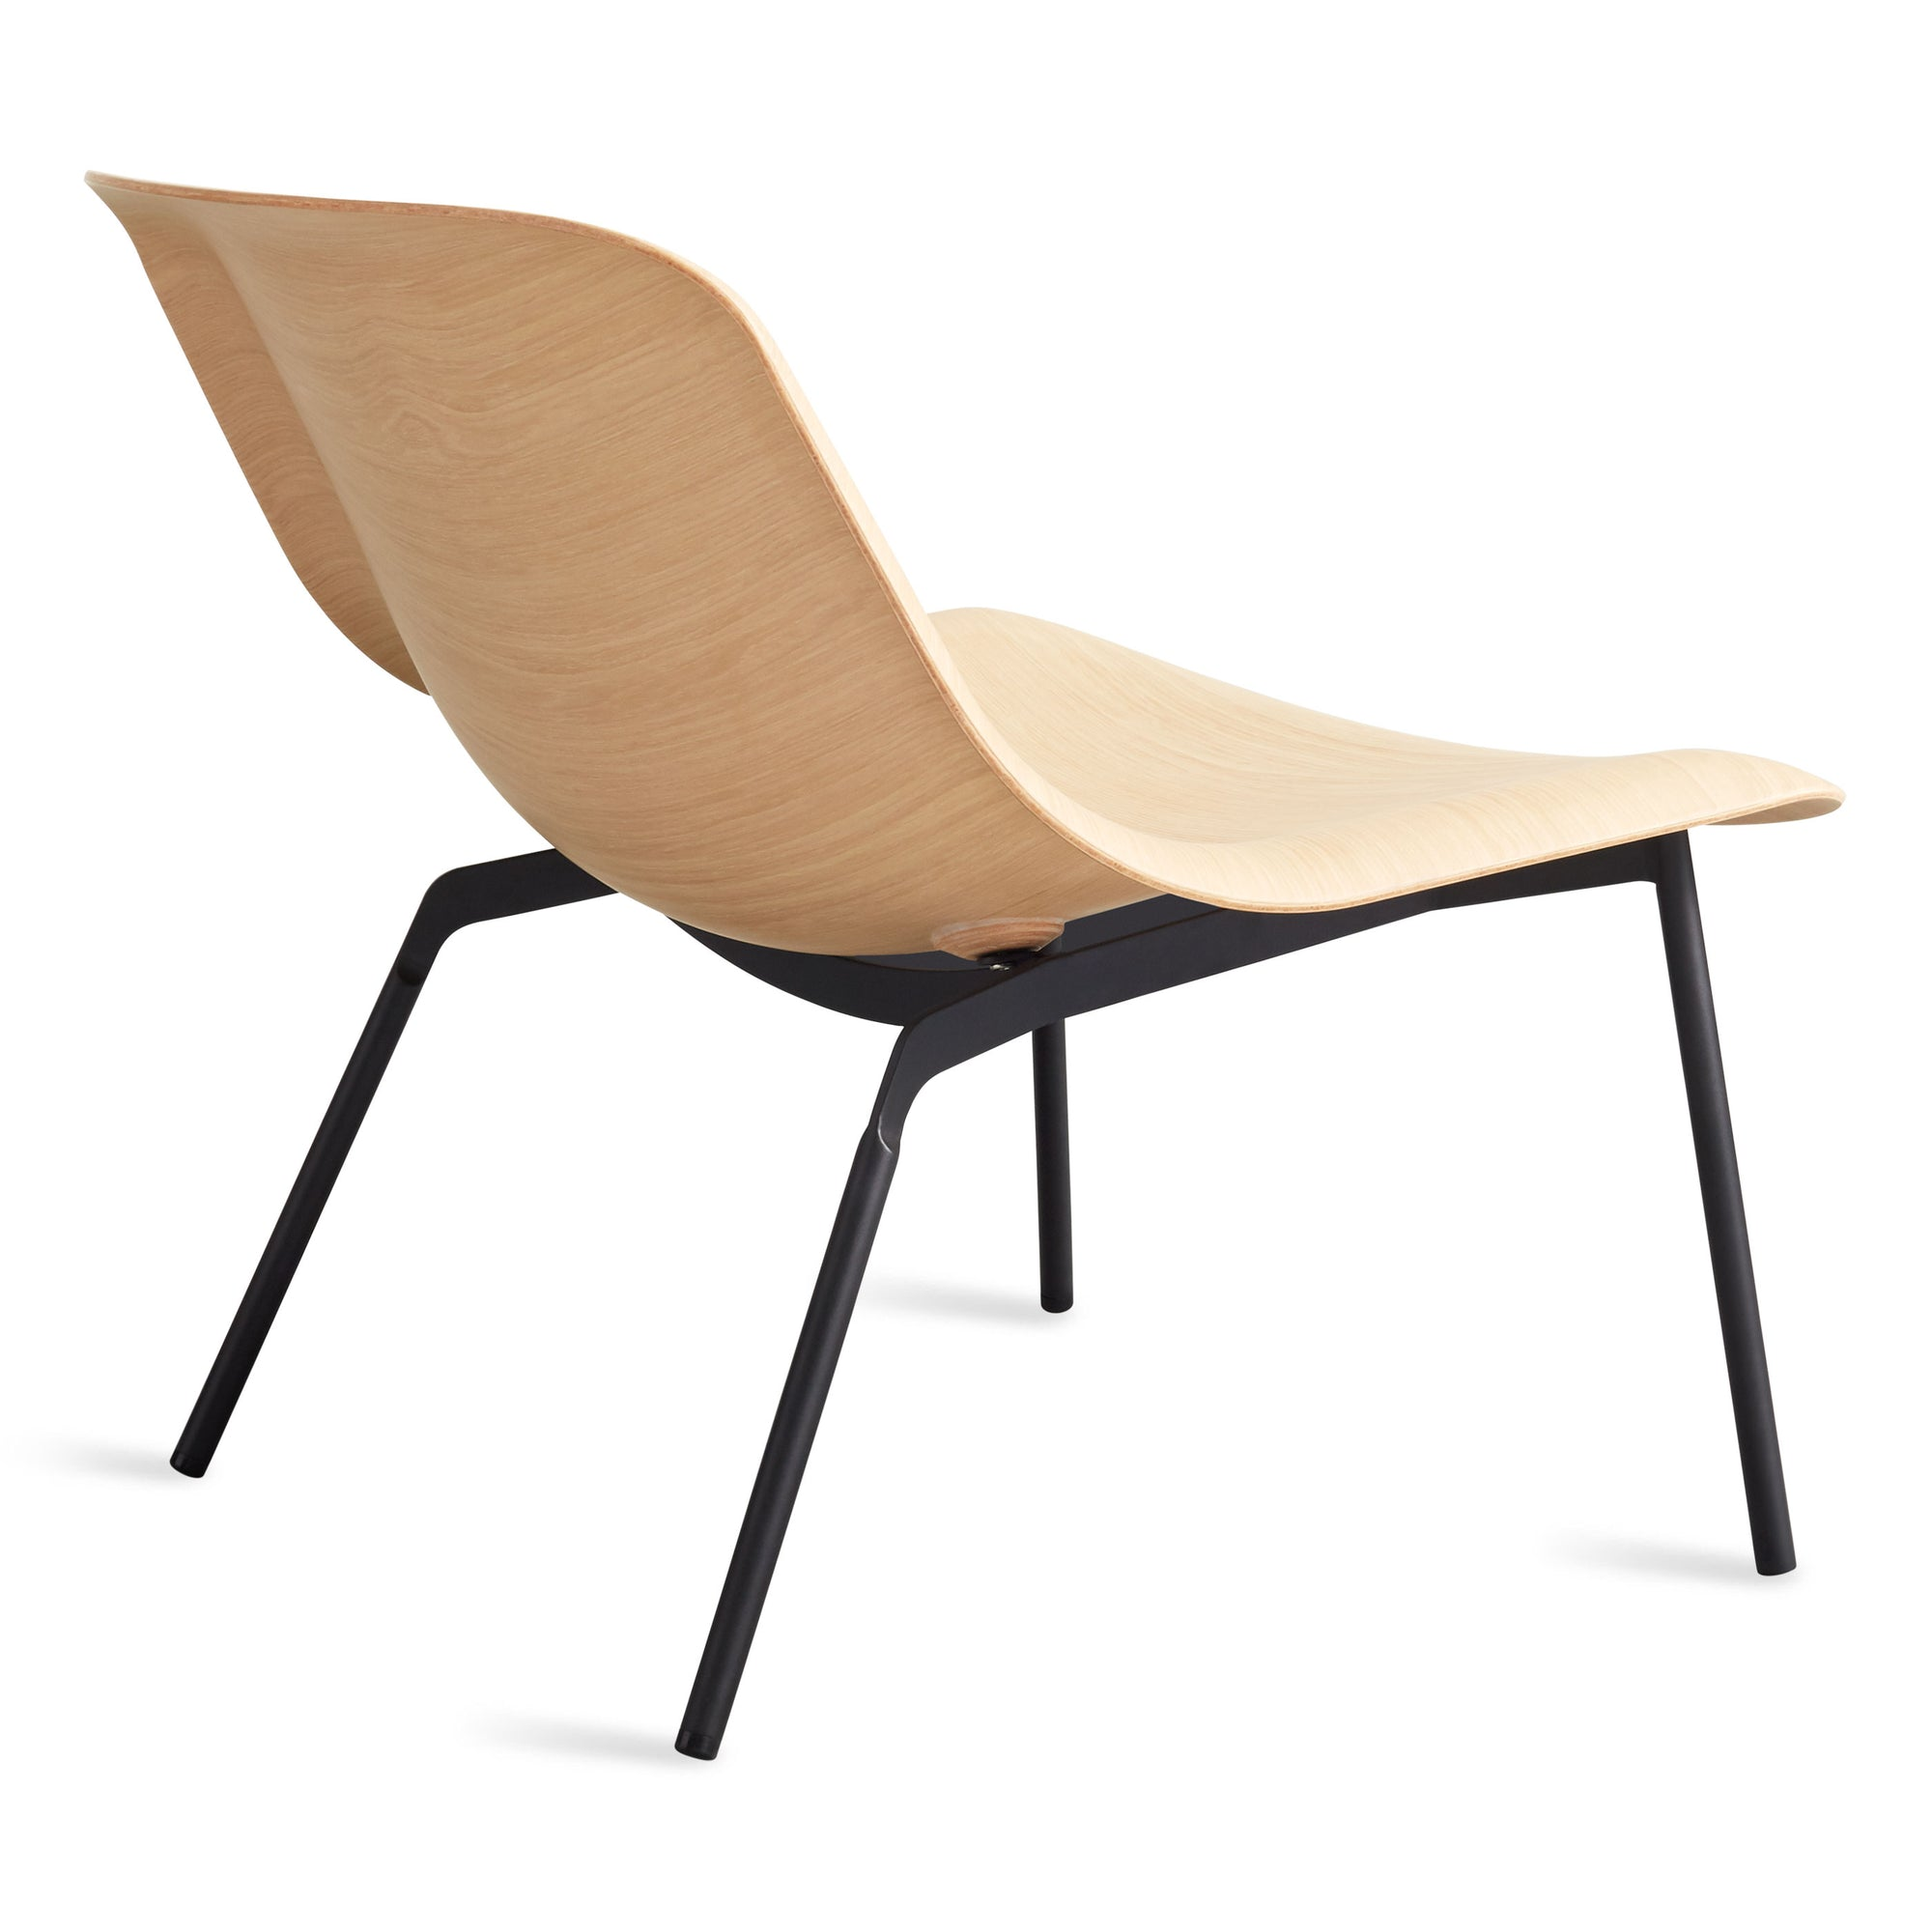 Pleasing Nonesuch Lounge Chair Creativecarmelina Interior Chair Design Creativecarmelinacom